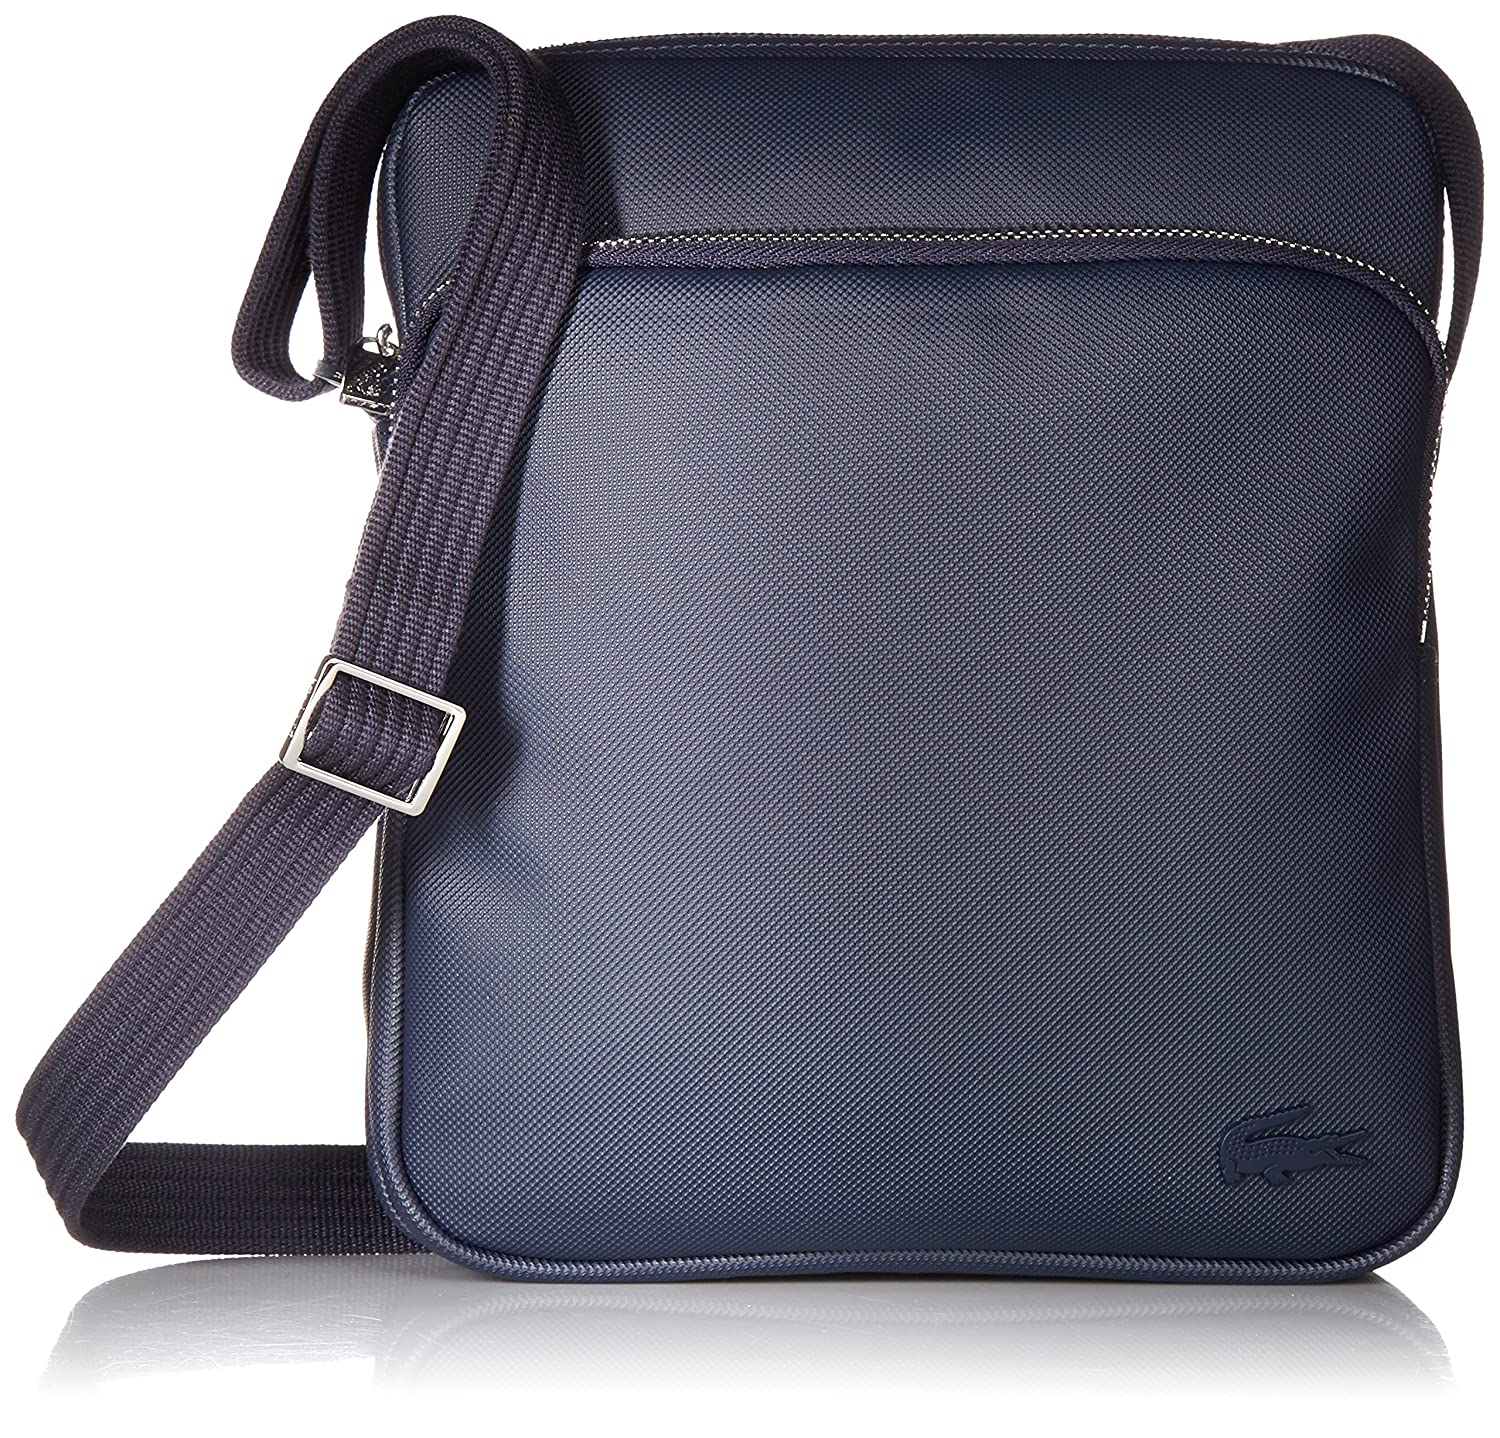 8cf810b2ee4f0 Amazon.com  Lacoste Men S Classic Crossover Bag